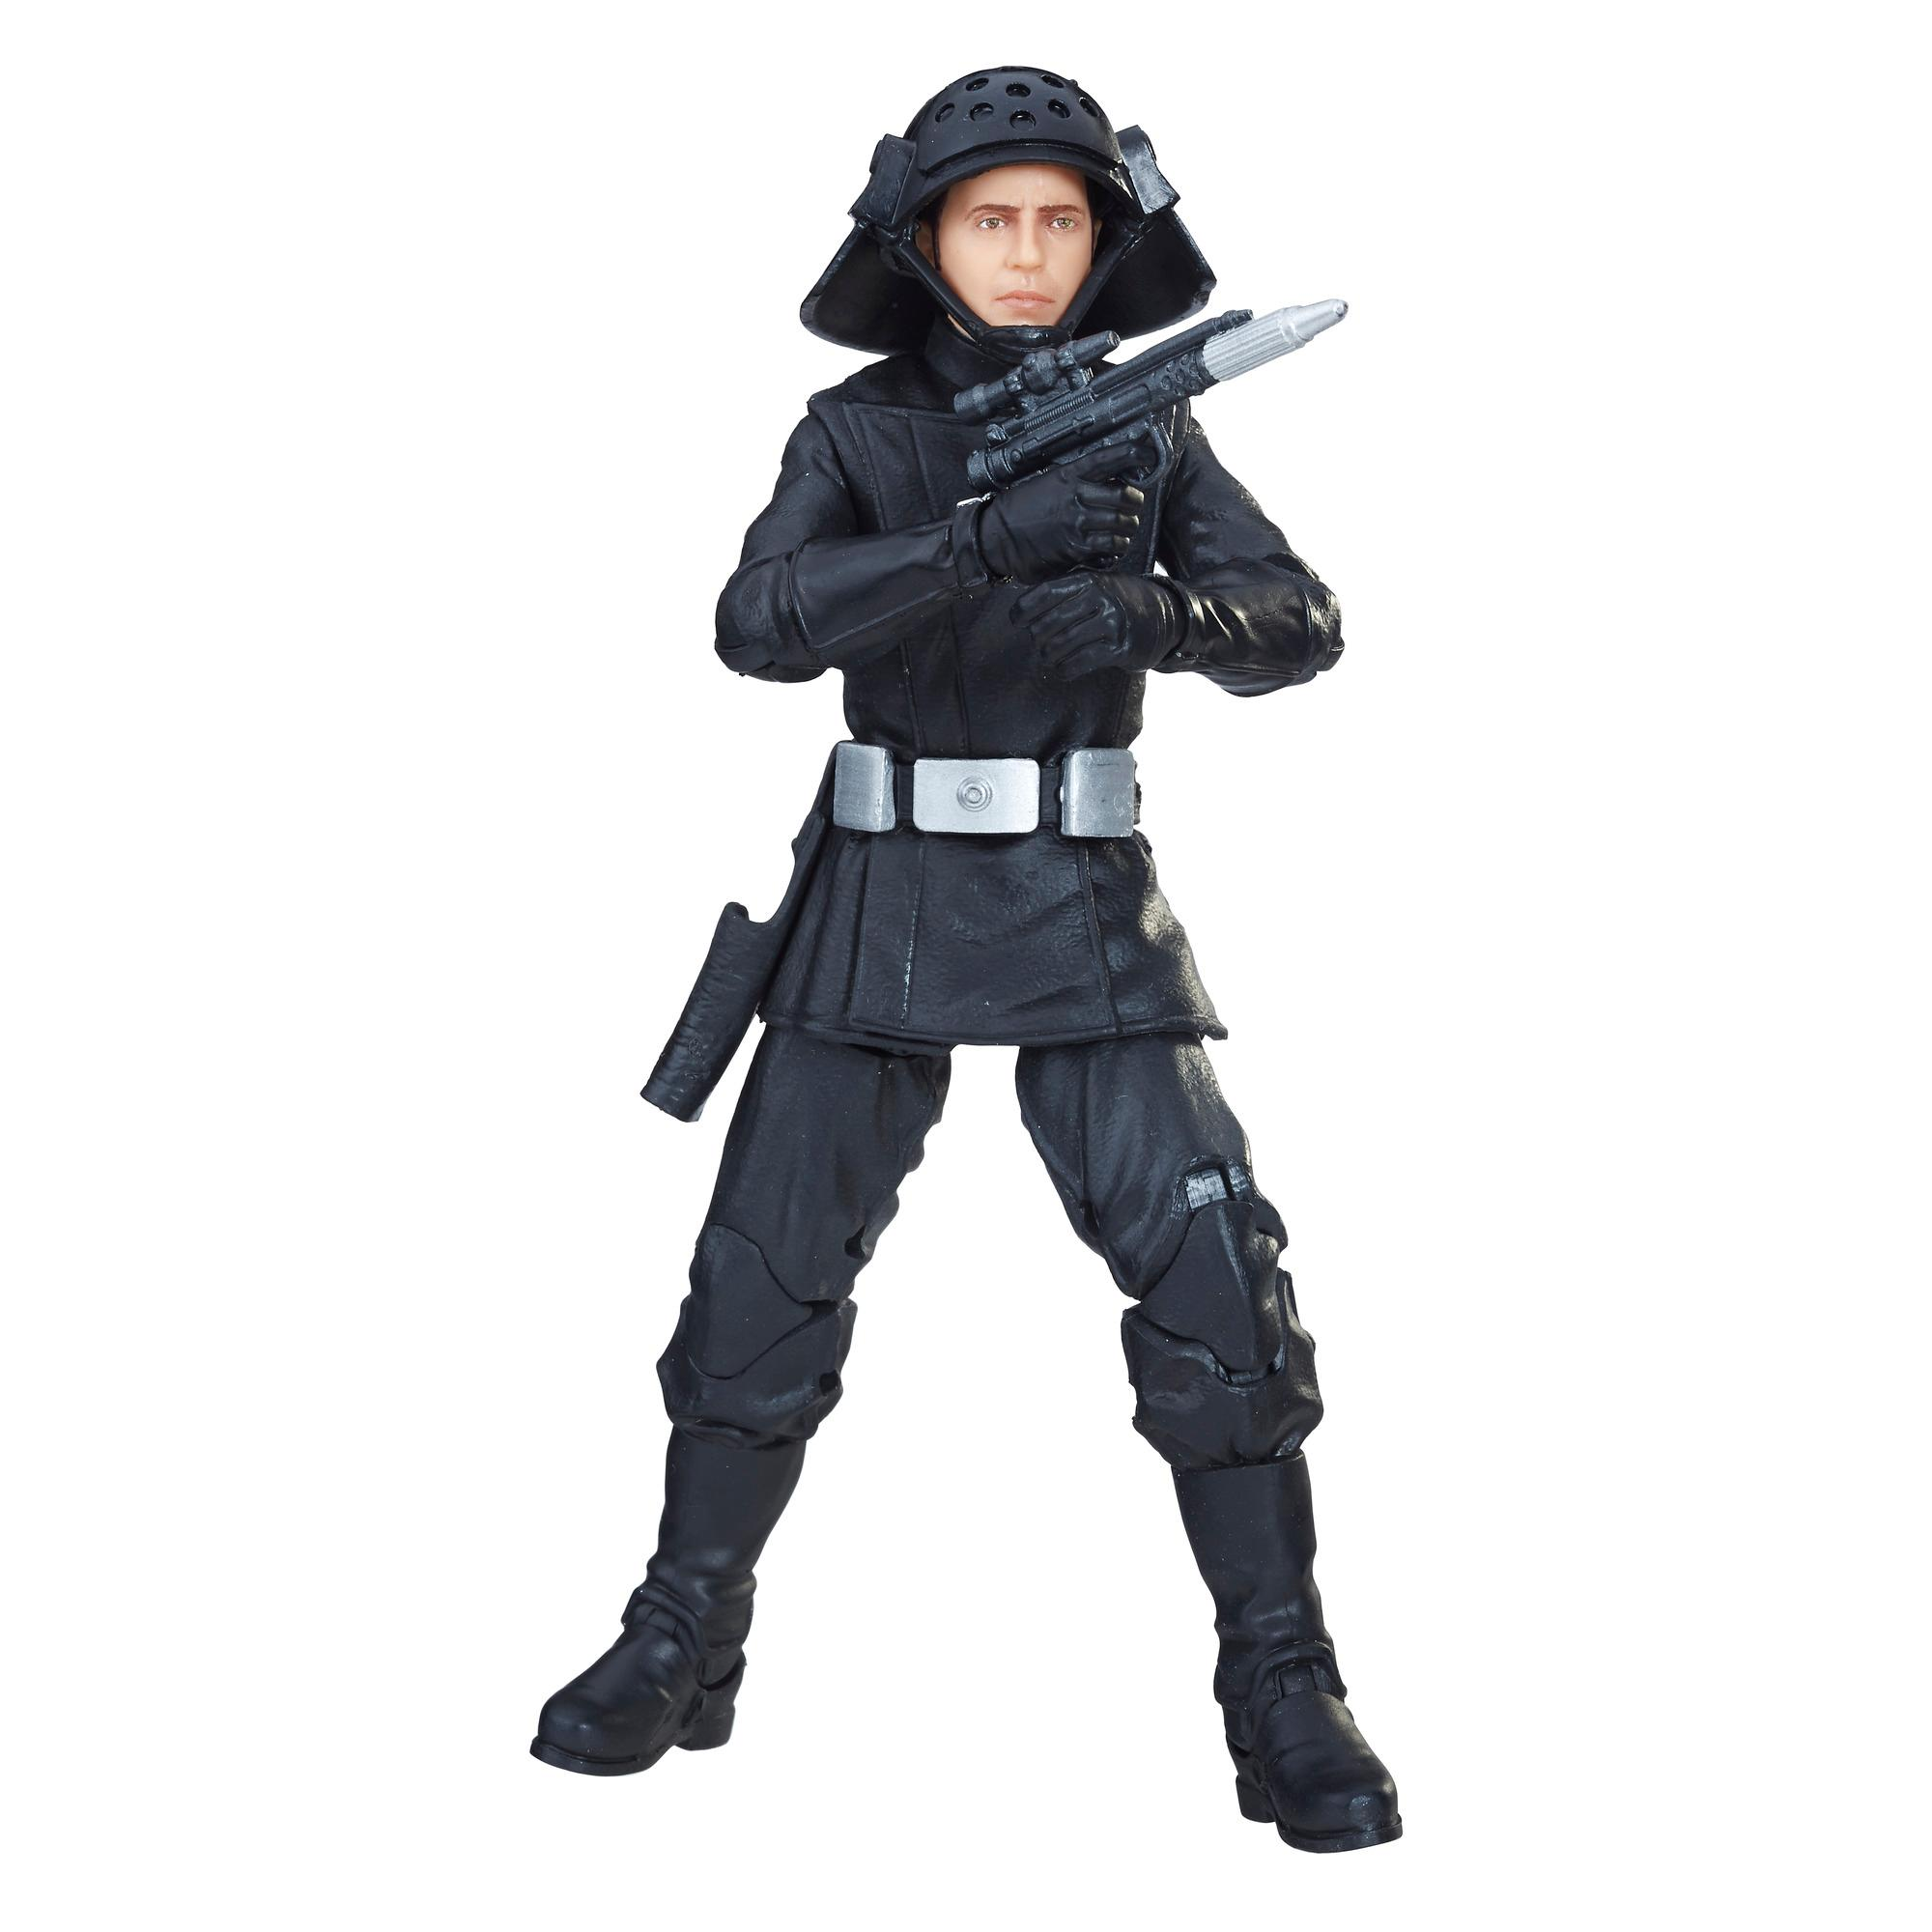 Star Wars The Black Series - soldado de la Estrella de la Muerte de 15 cm